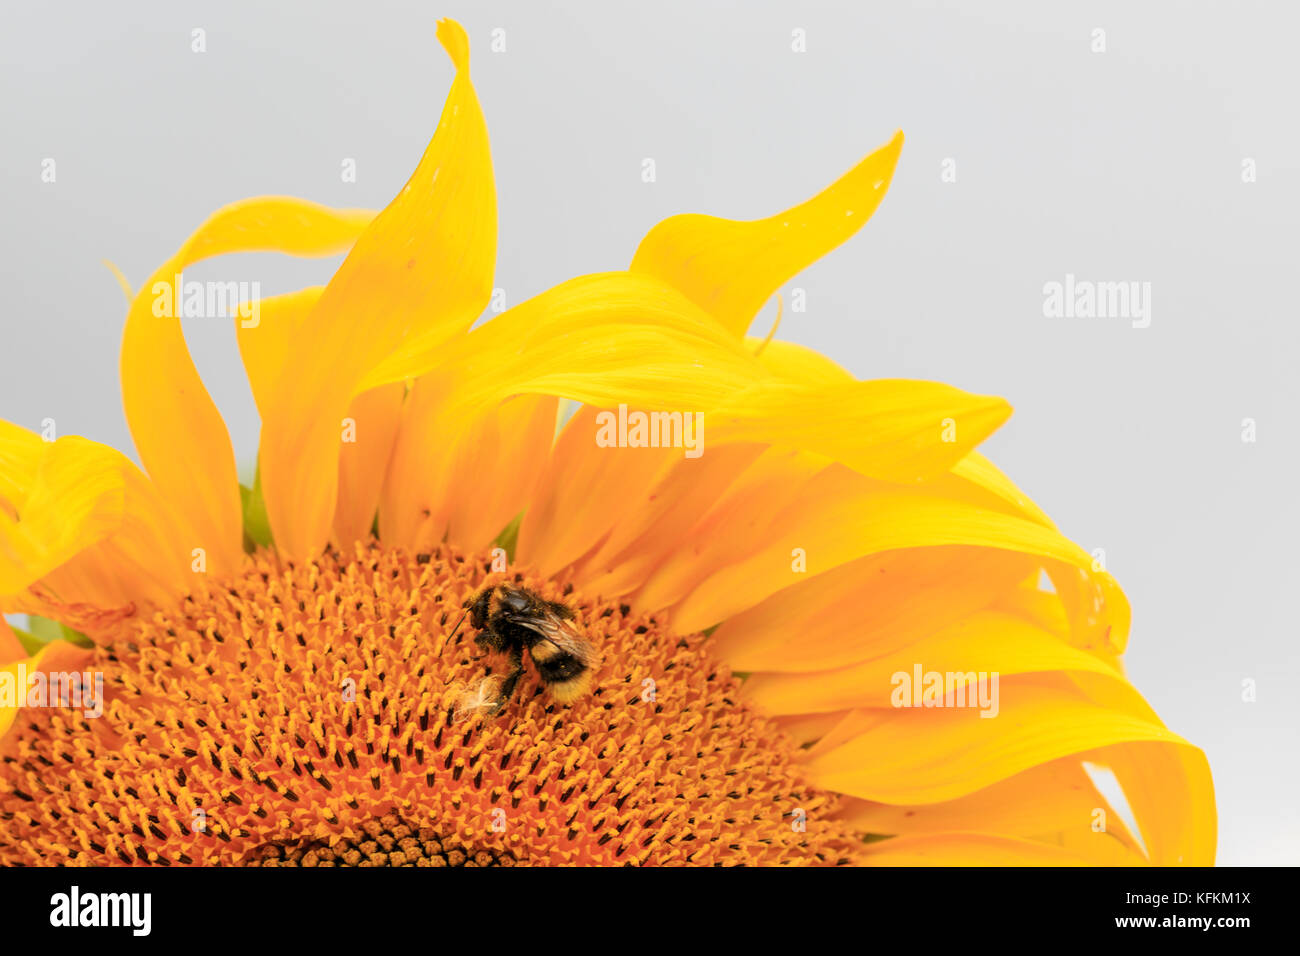 Bee feeding on nectar from a sunflower - Stock Image